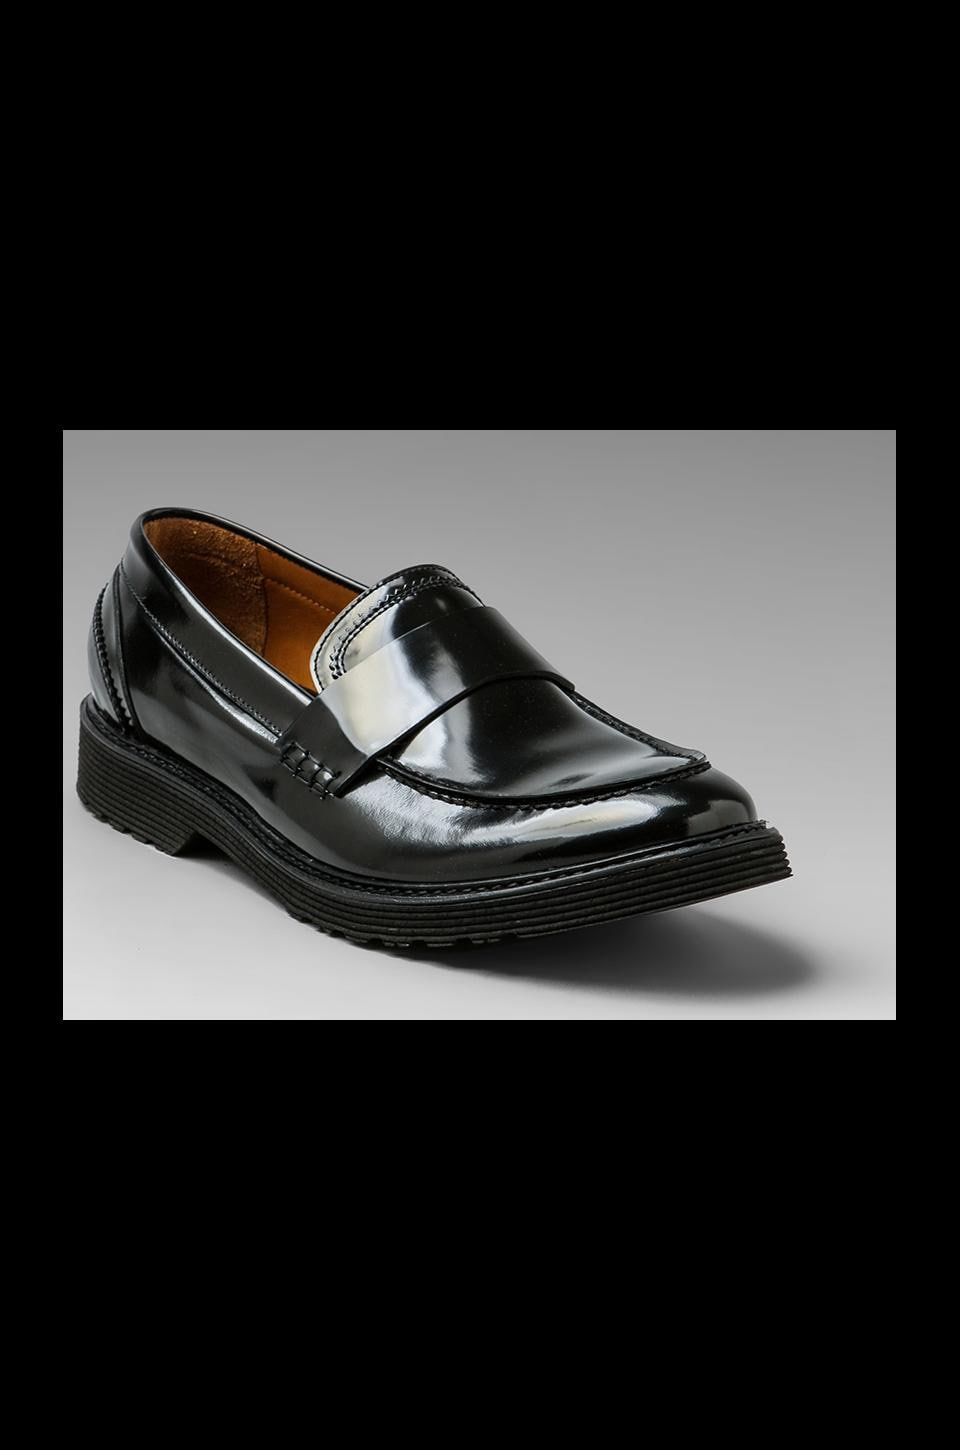 McQ Alexander McQueen Gimped Loafer in Black